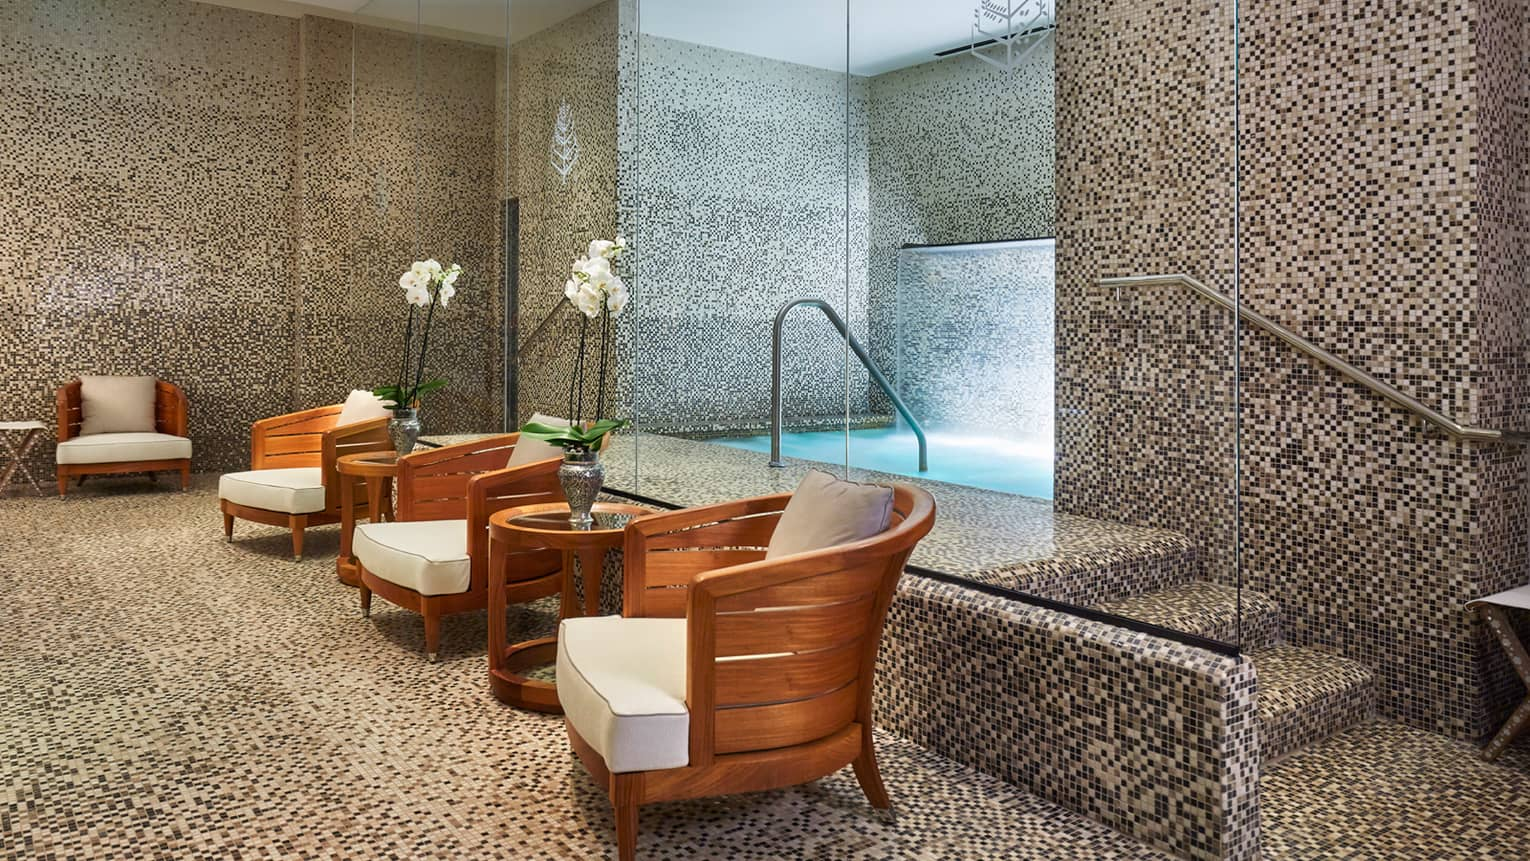 Tile spa room with whirlpool bath behind row of wood chairs with white cushions, tables with white orchids